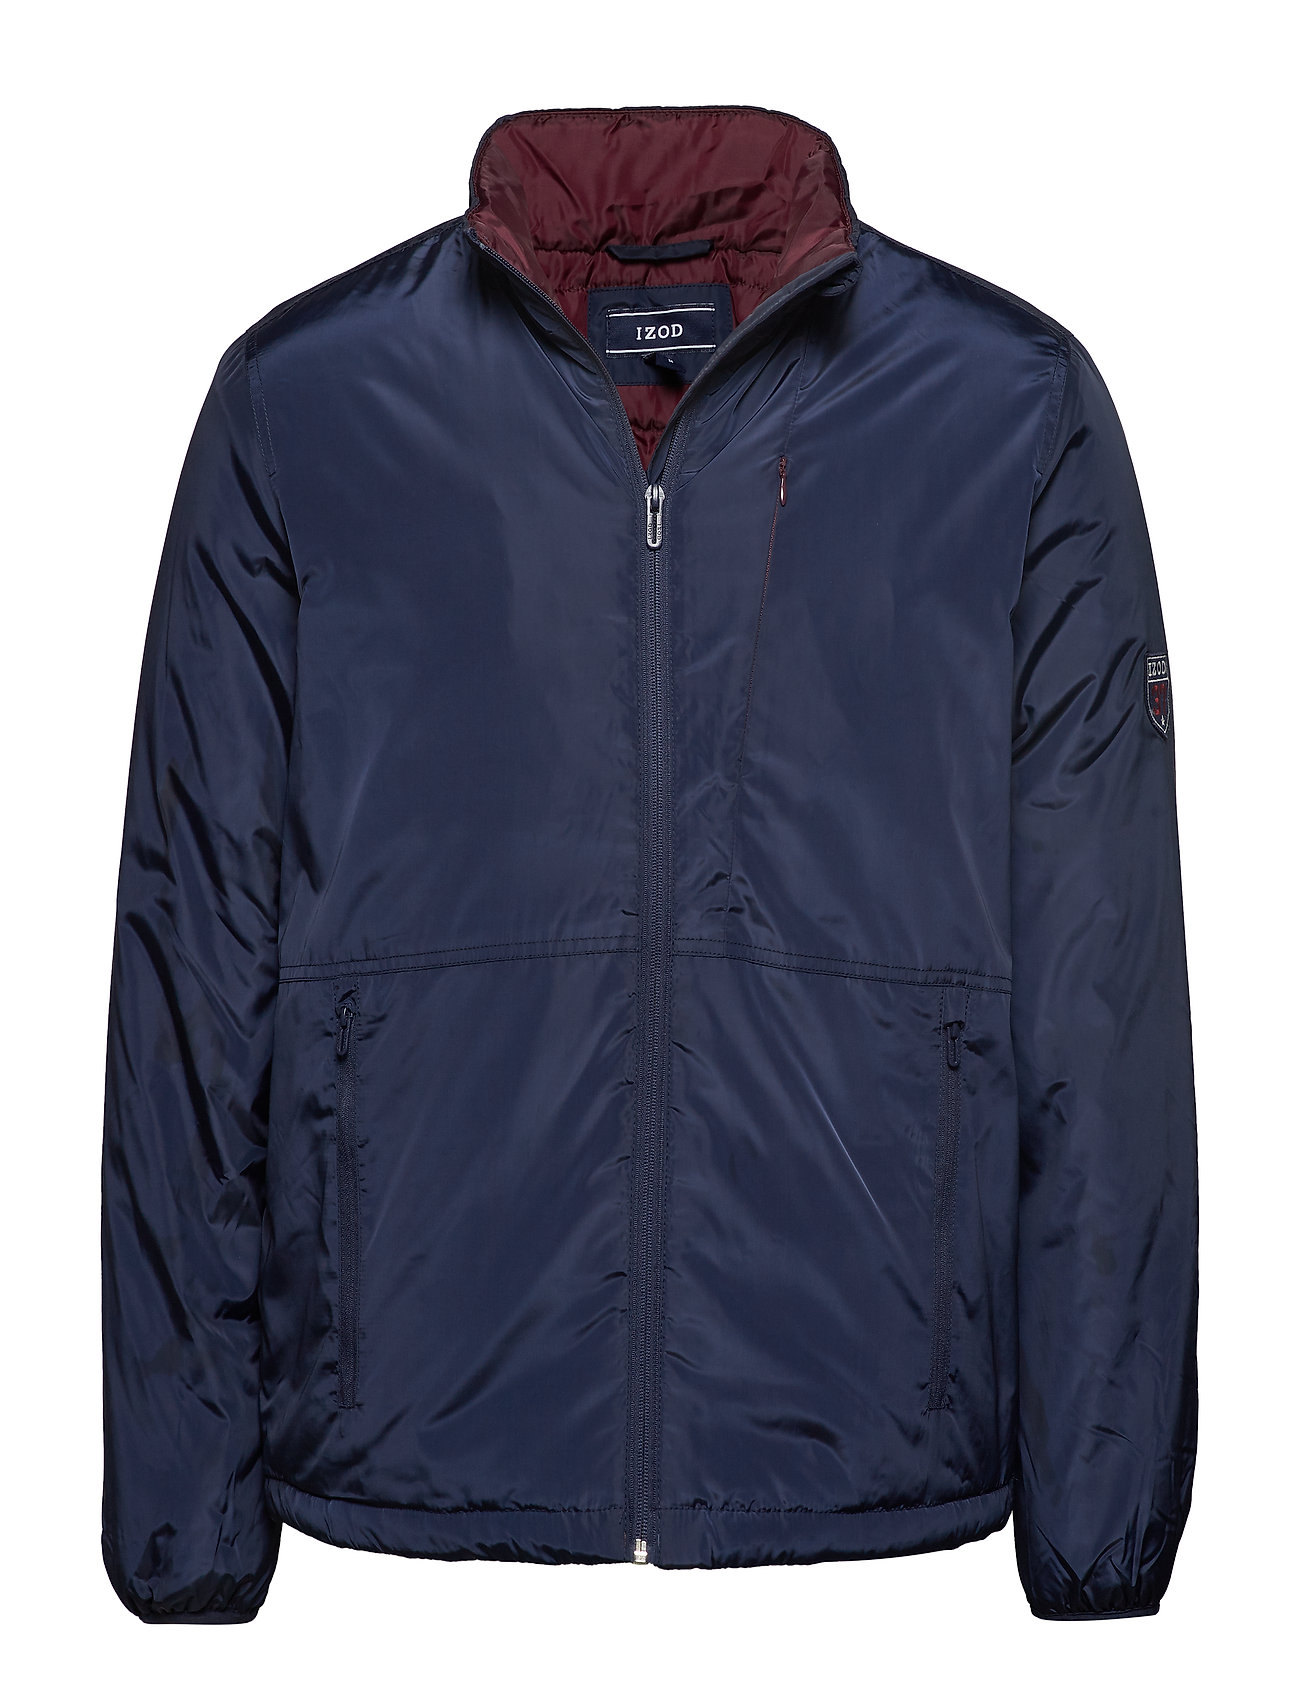 IZOD ZIP UP JACKET - NAVY BLAZER